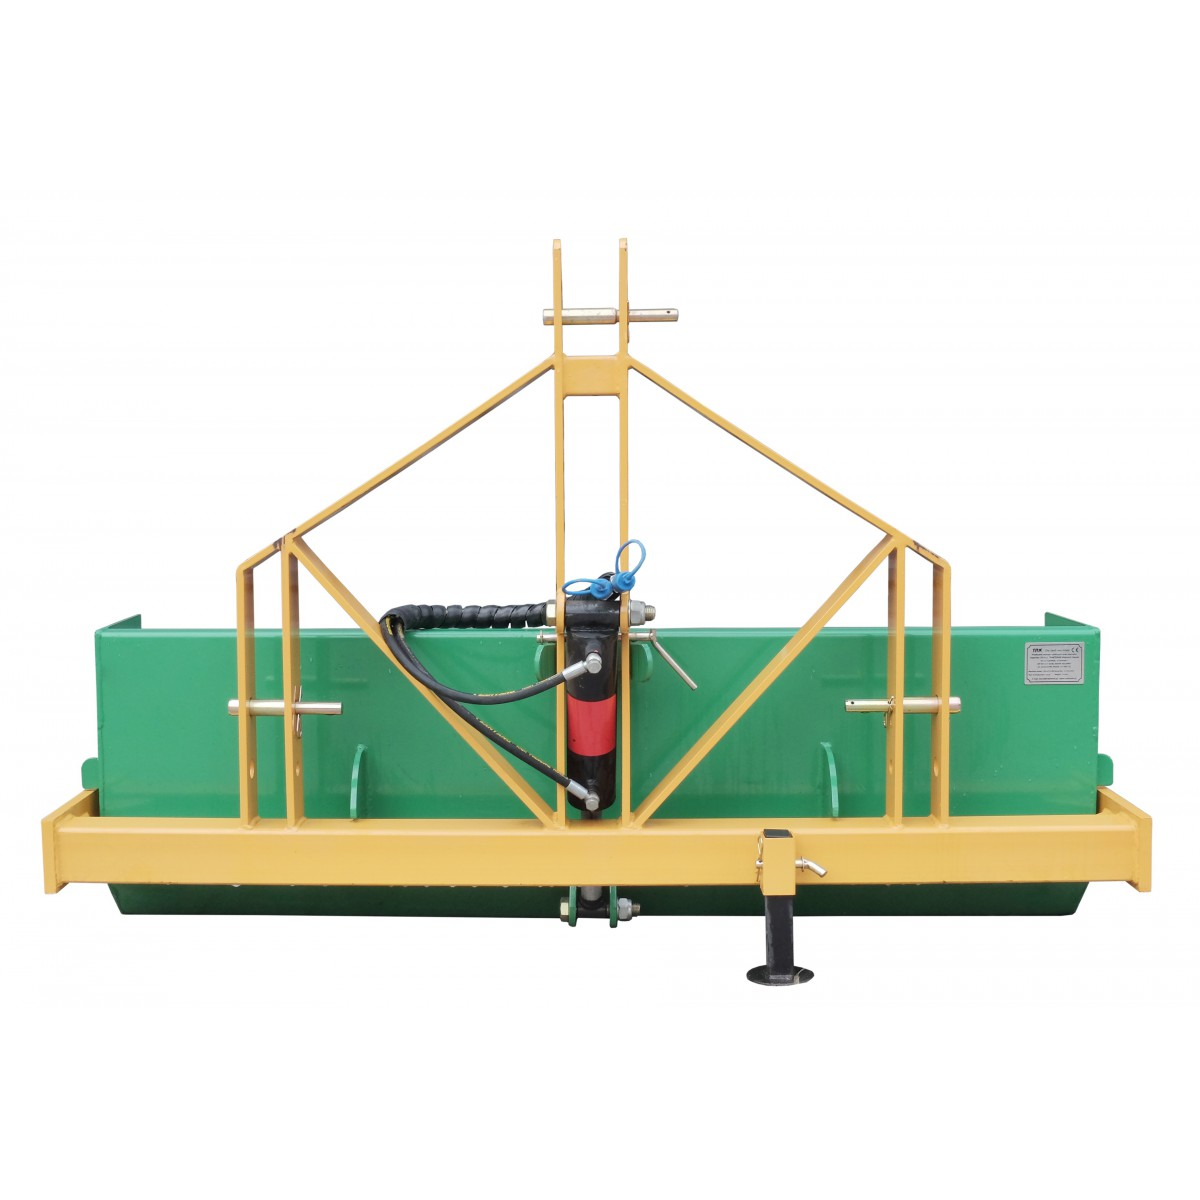 120 cm transport box with a hydraulic tipper, capacity 300 kg